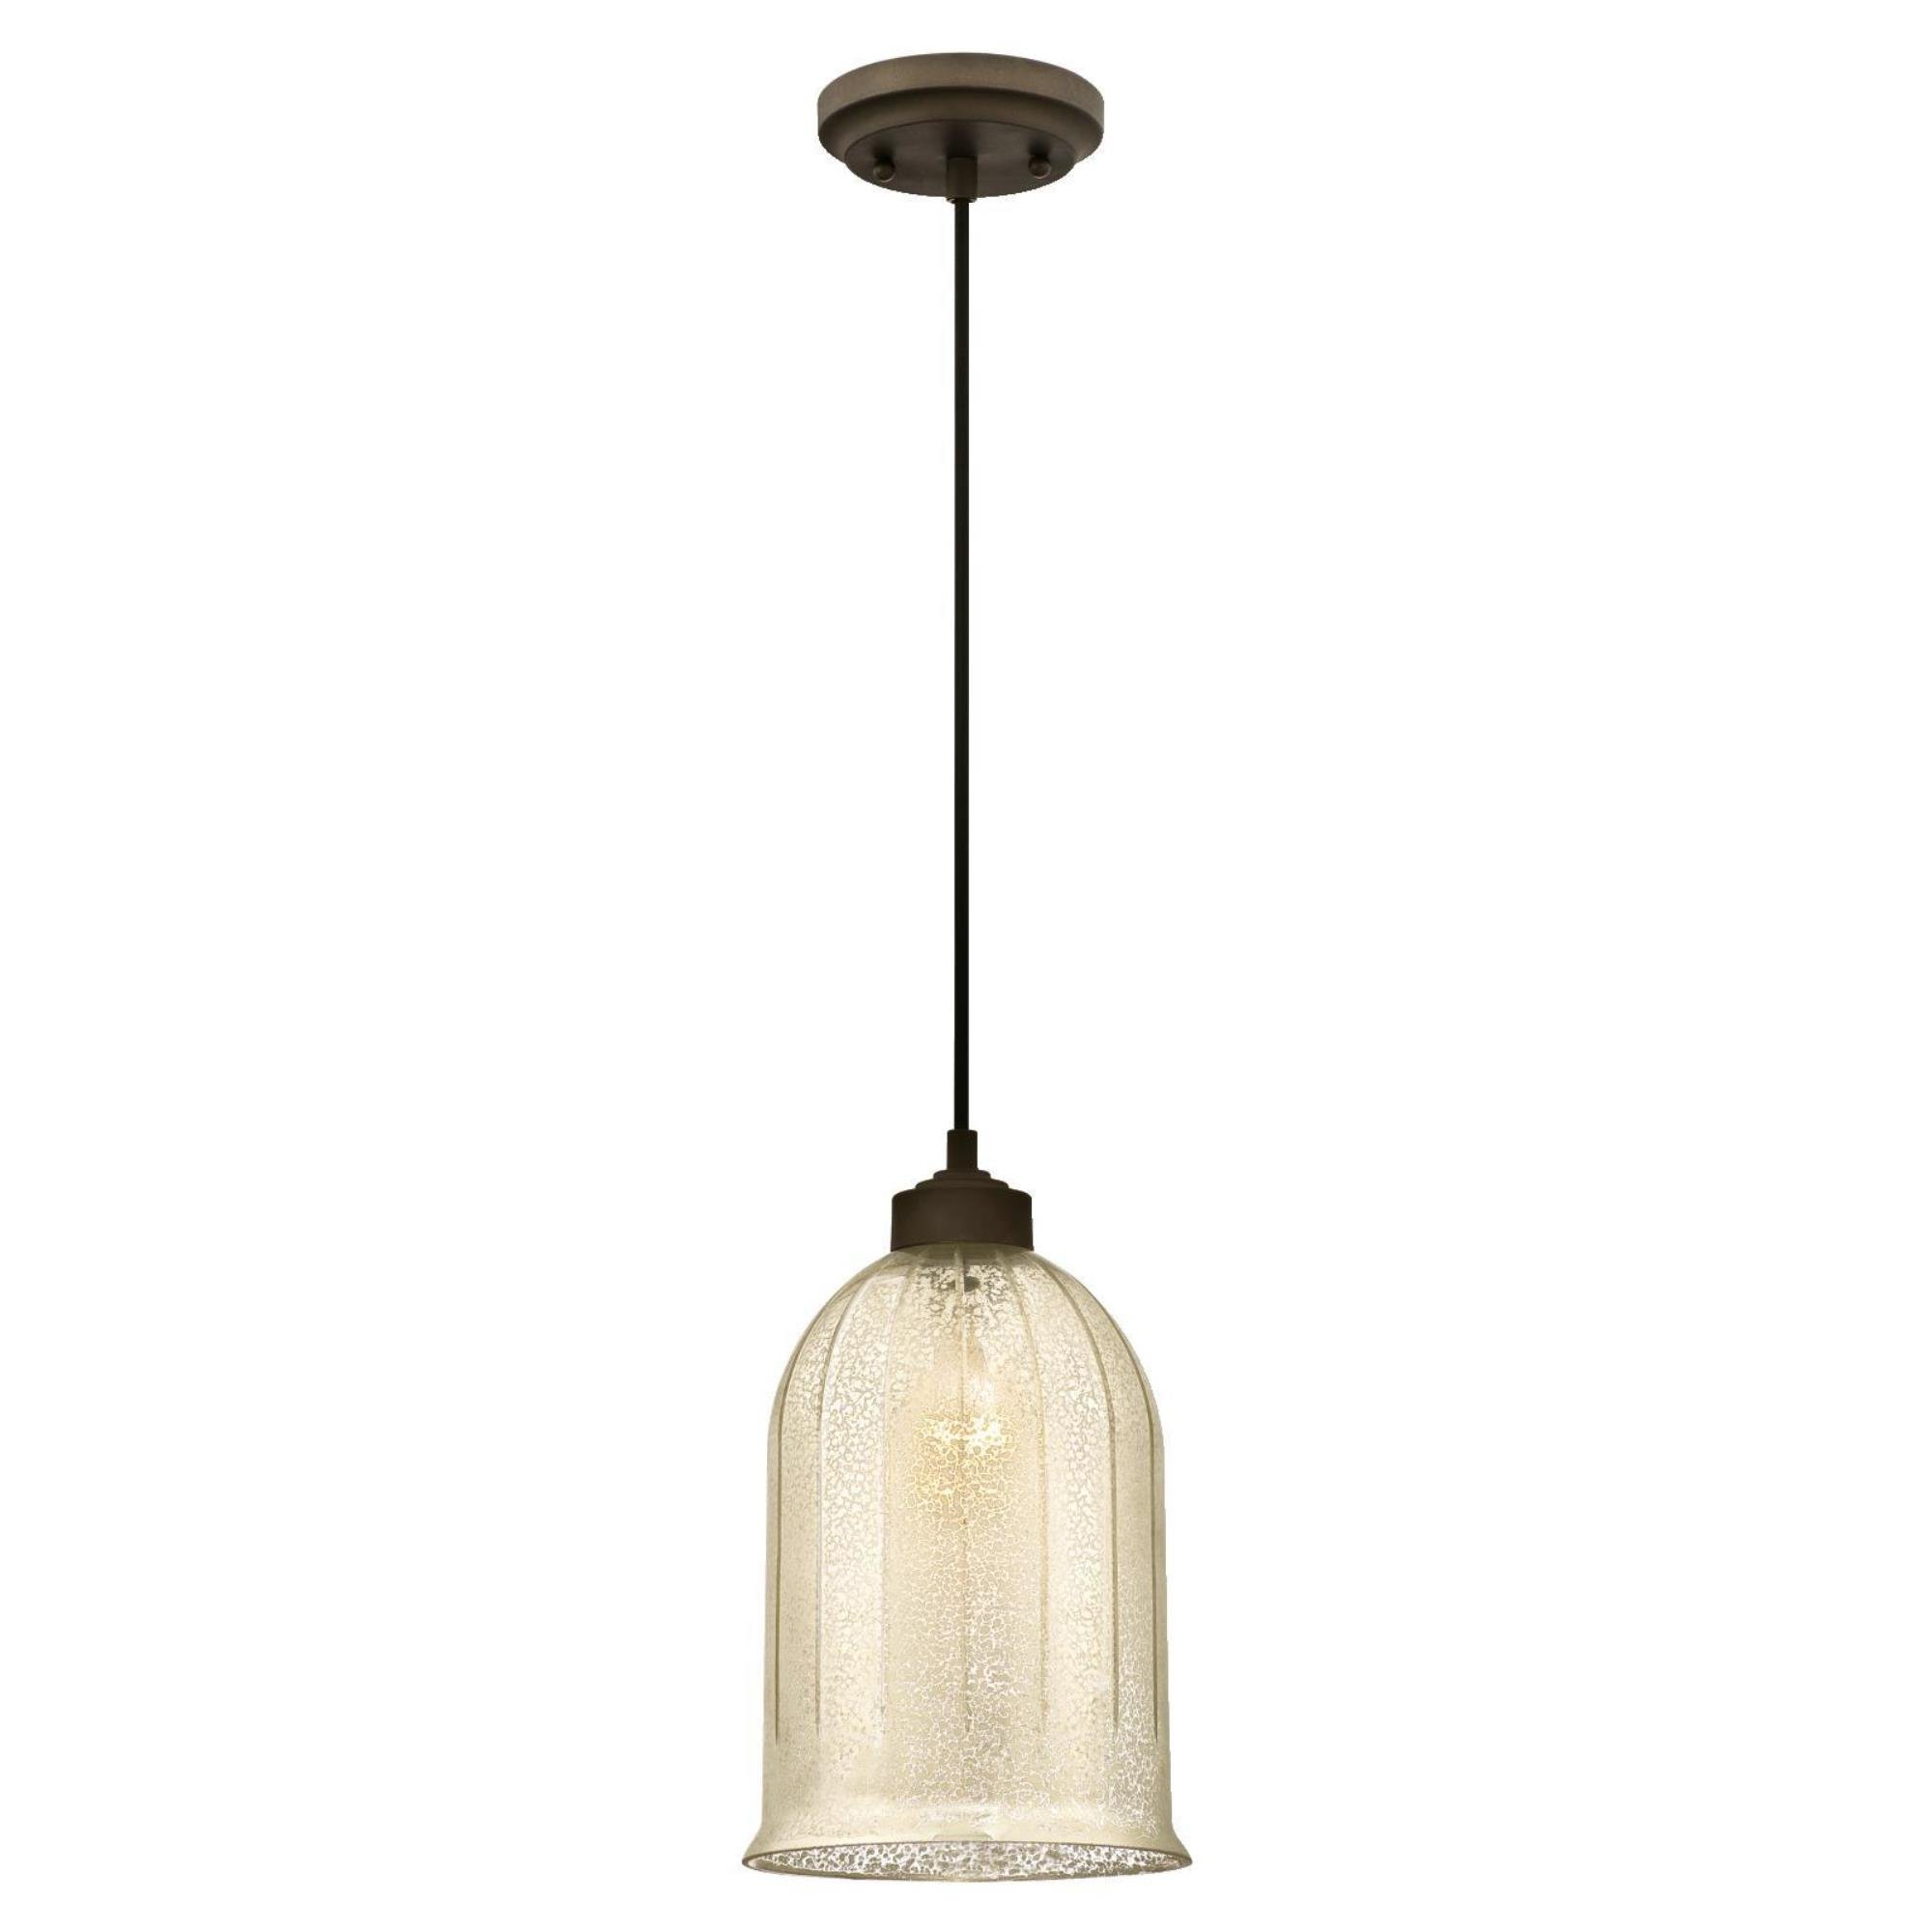 Westinghouse 6328600 One-Light Indoor Mini Pendant, Oil Rubbed Bronze Finish with Antique Mirror Glass